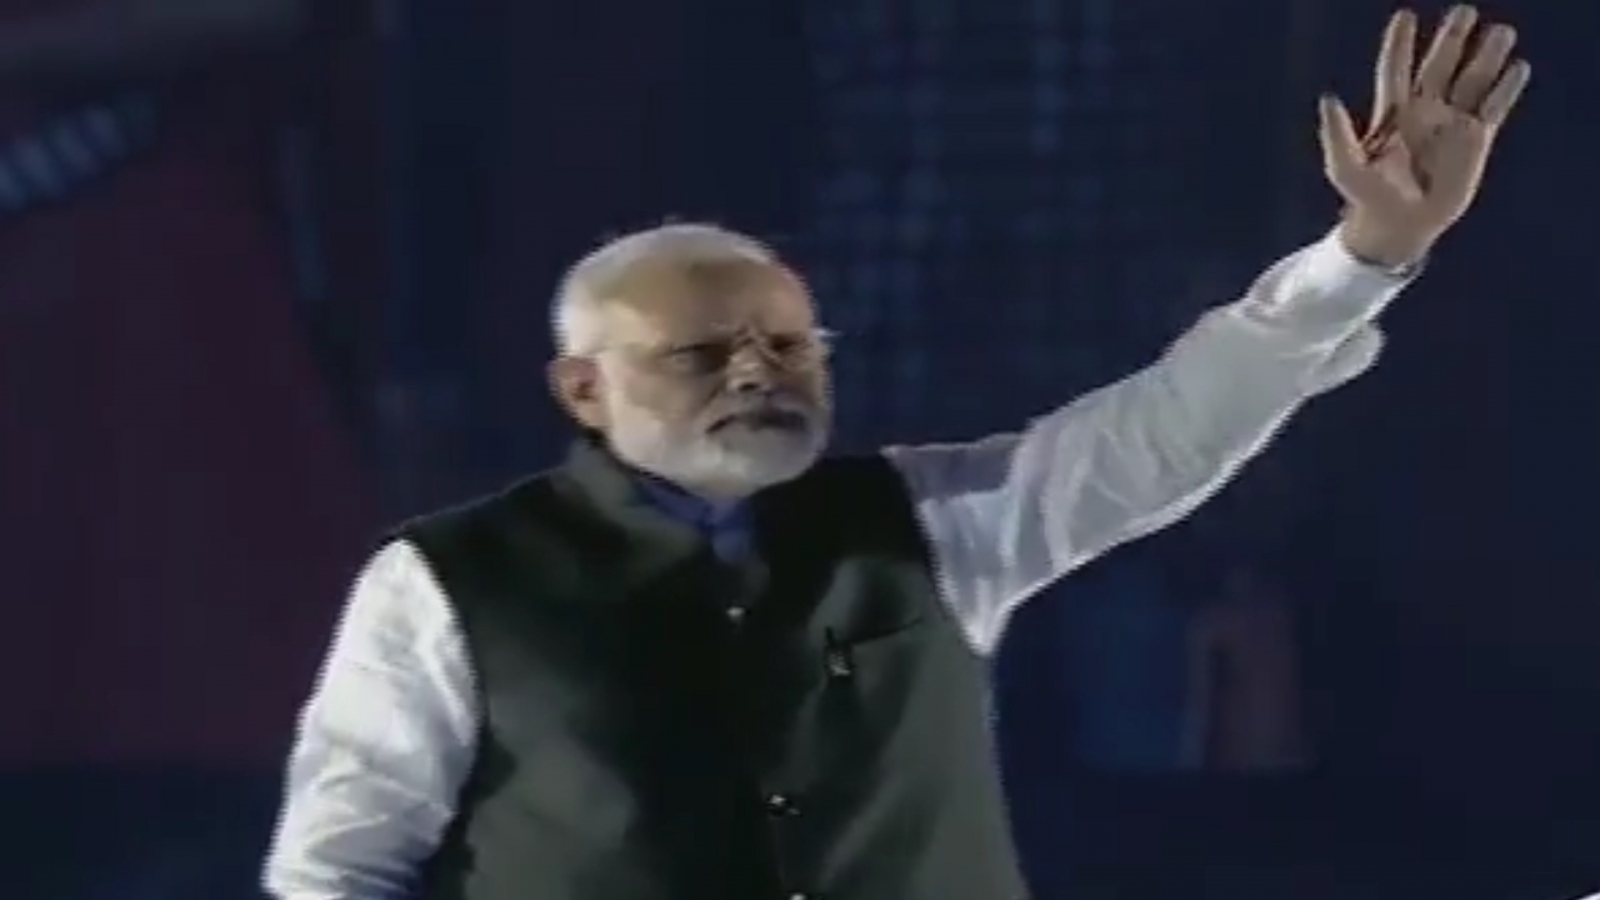 darth-vader-theme-song-plays-as-indian-prime-minister-narendra-modi-finishes-speech